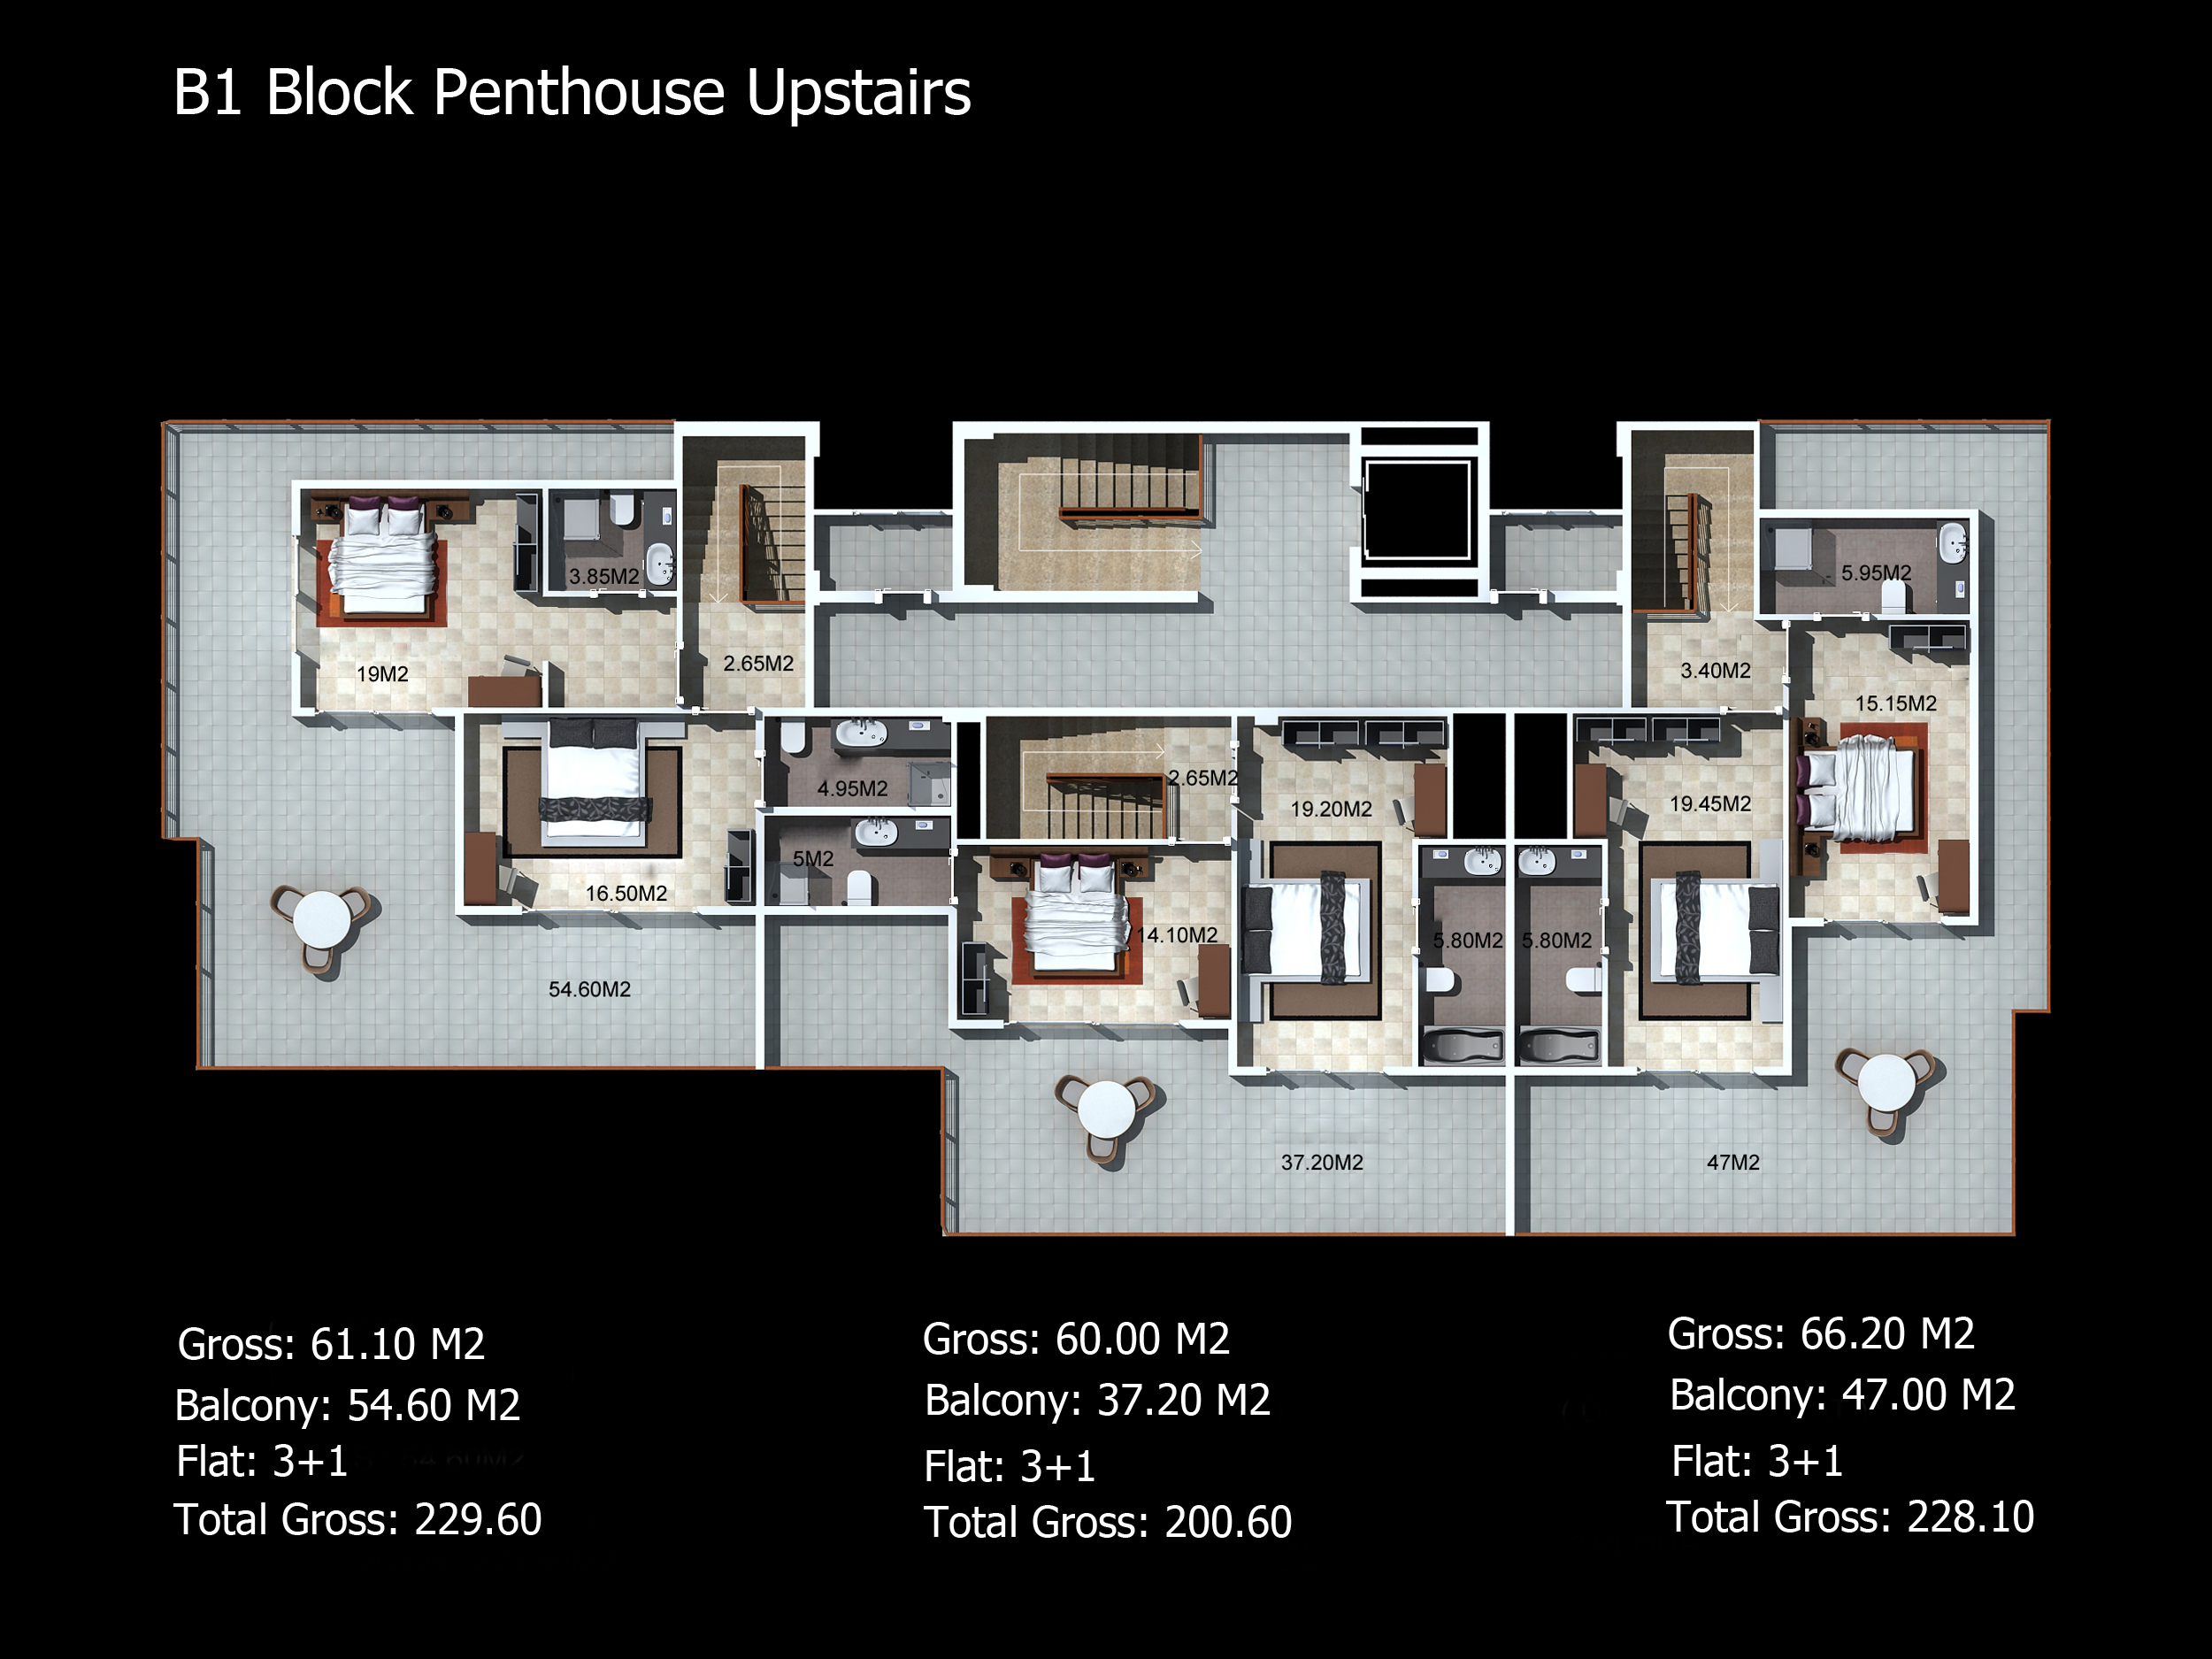 b1-block-penthouse-upstairs